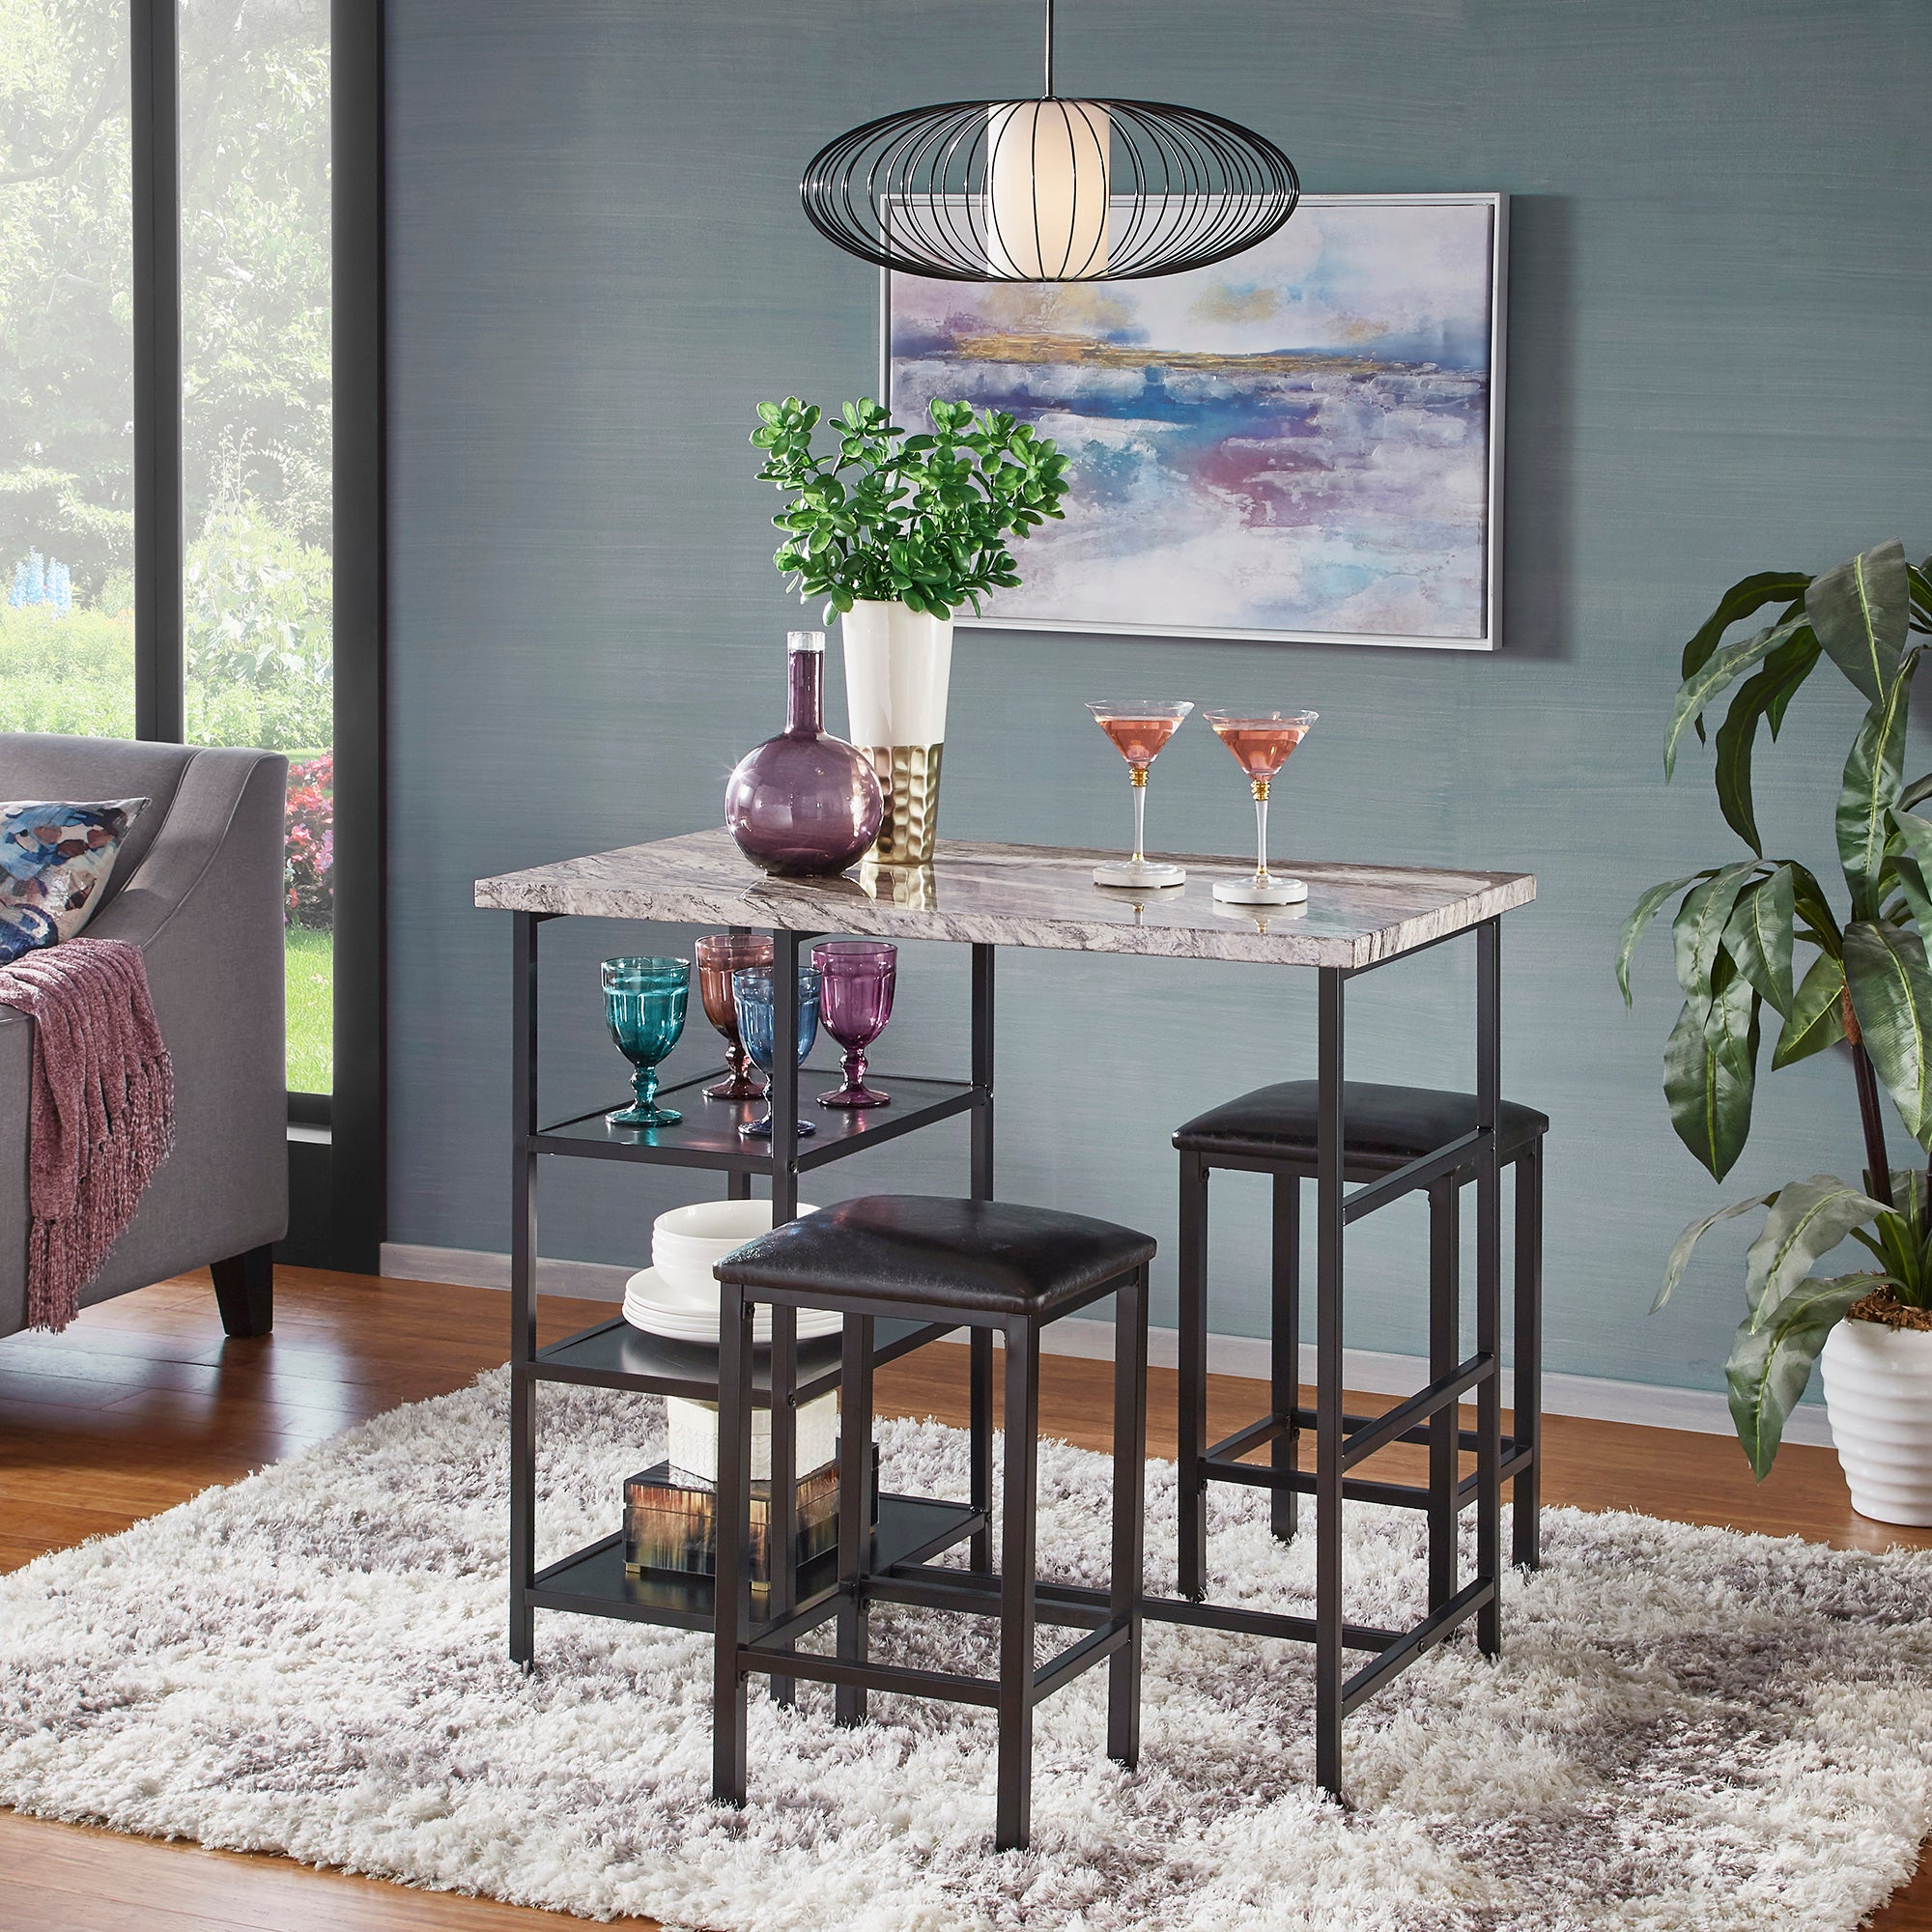 Counter Height Metal Table Set with Faux Marble Top - Black Finish Base and Beige Faux Marble Top